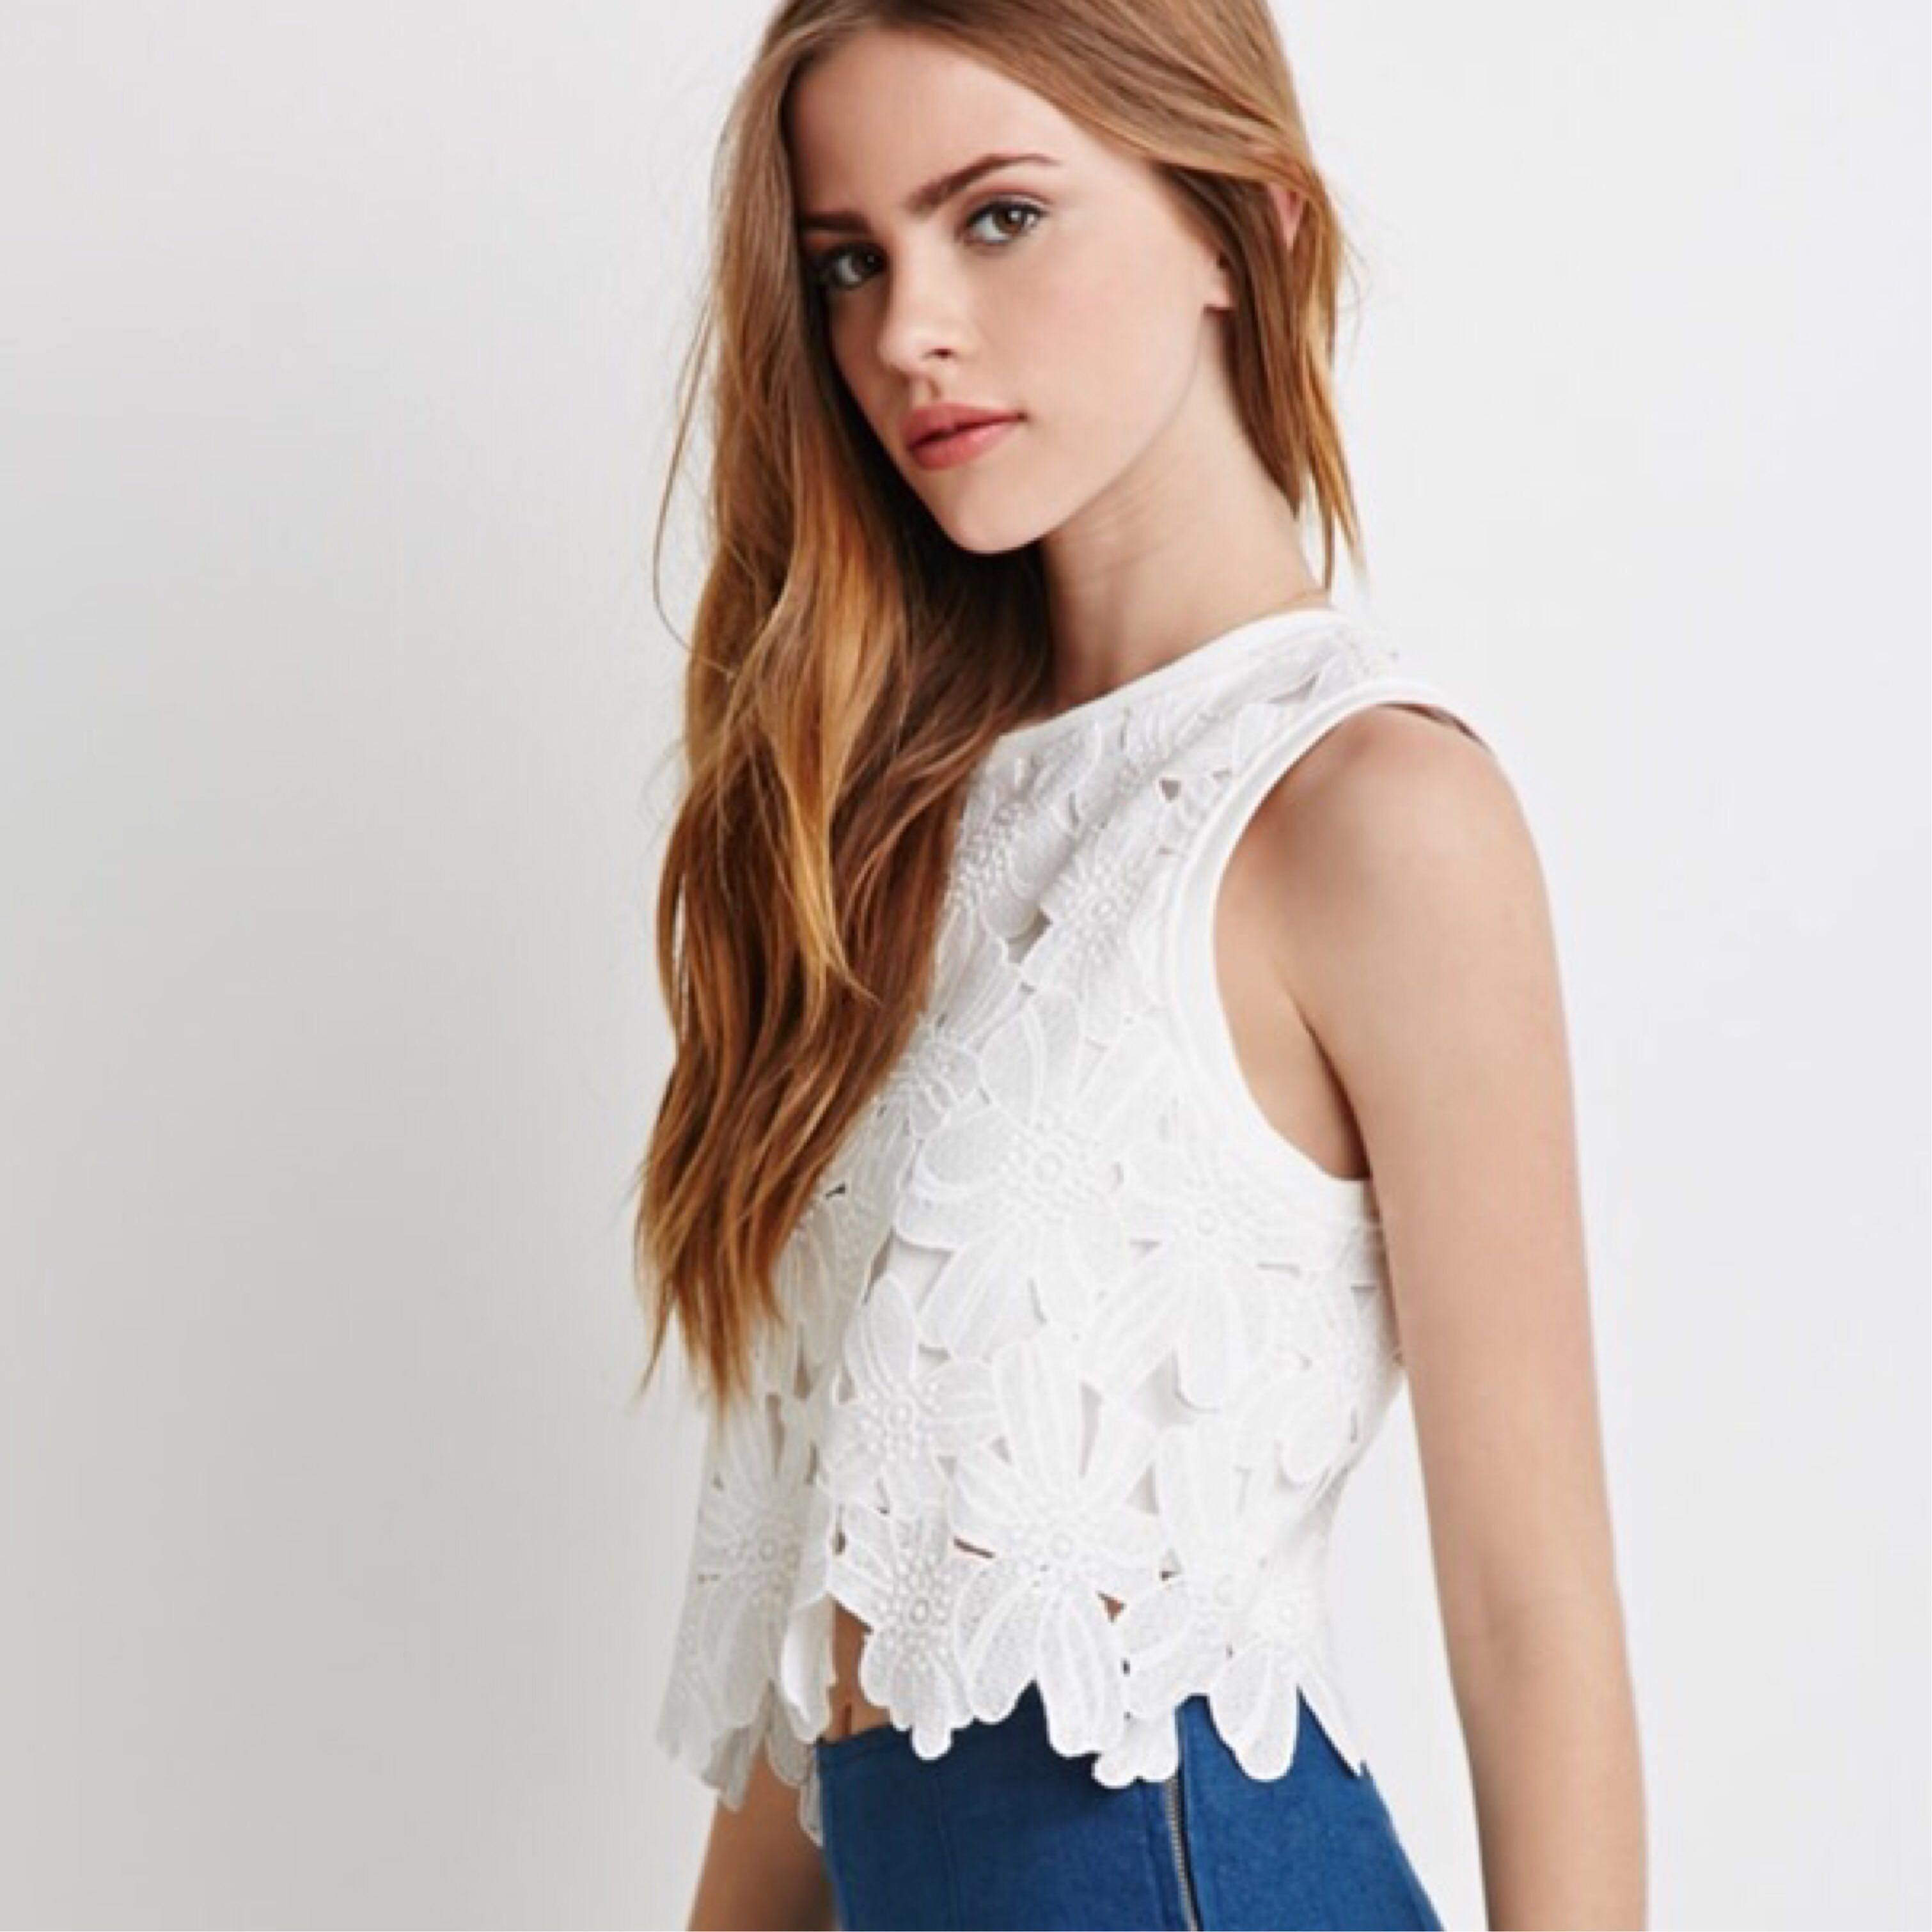 Forever 21 Floral Crochet Top Womens Fashion Clothes Tops On